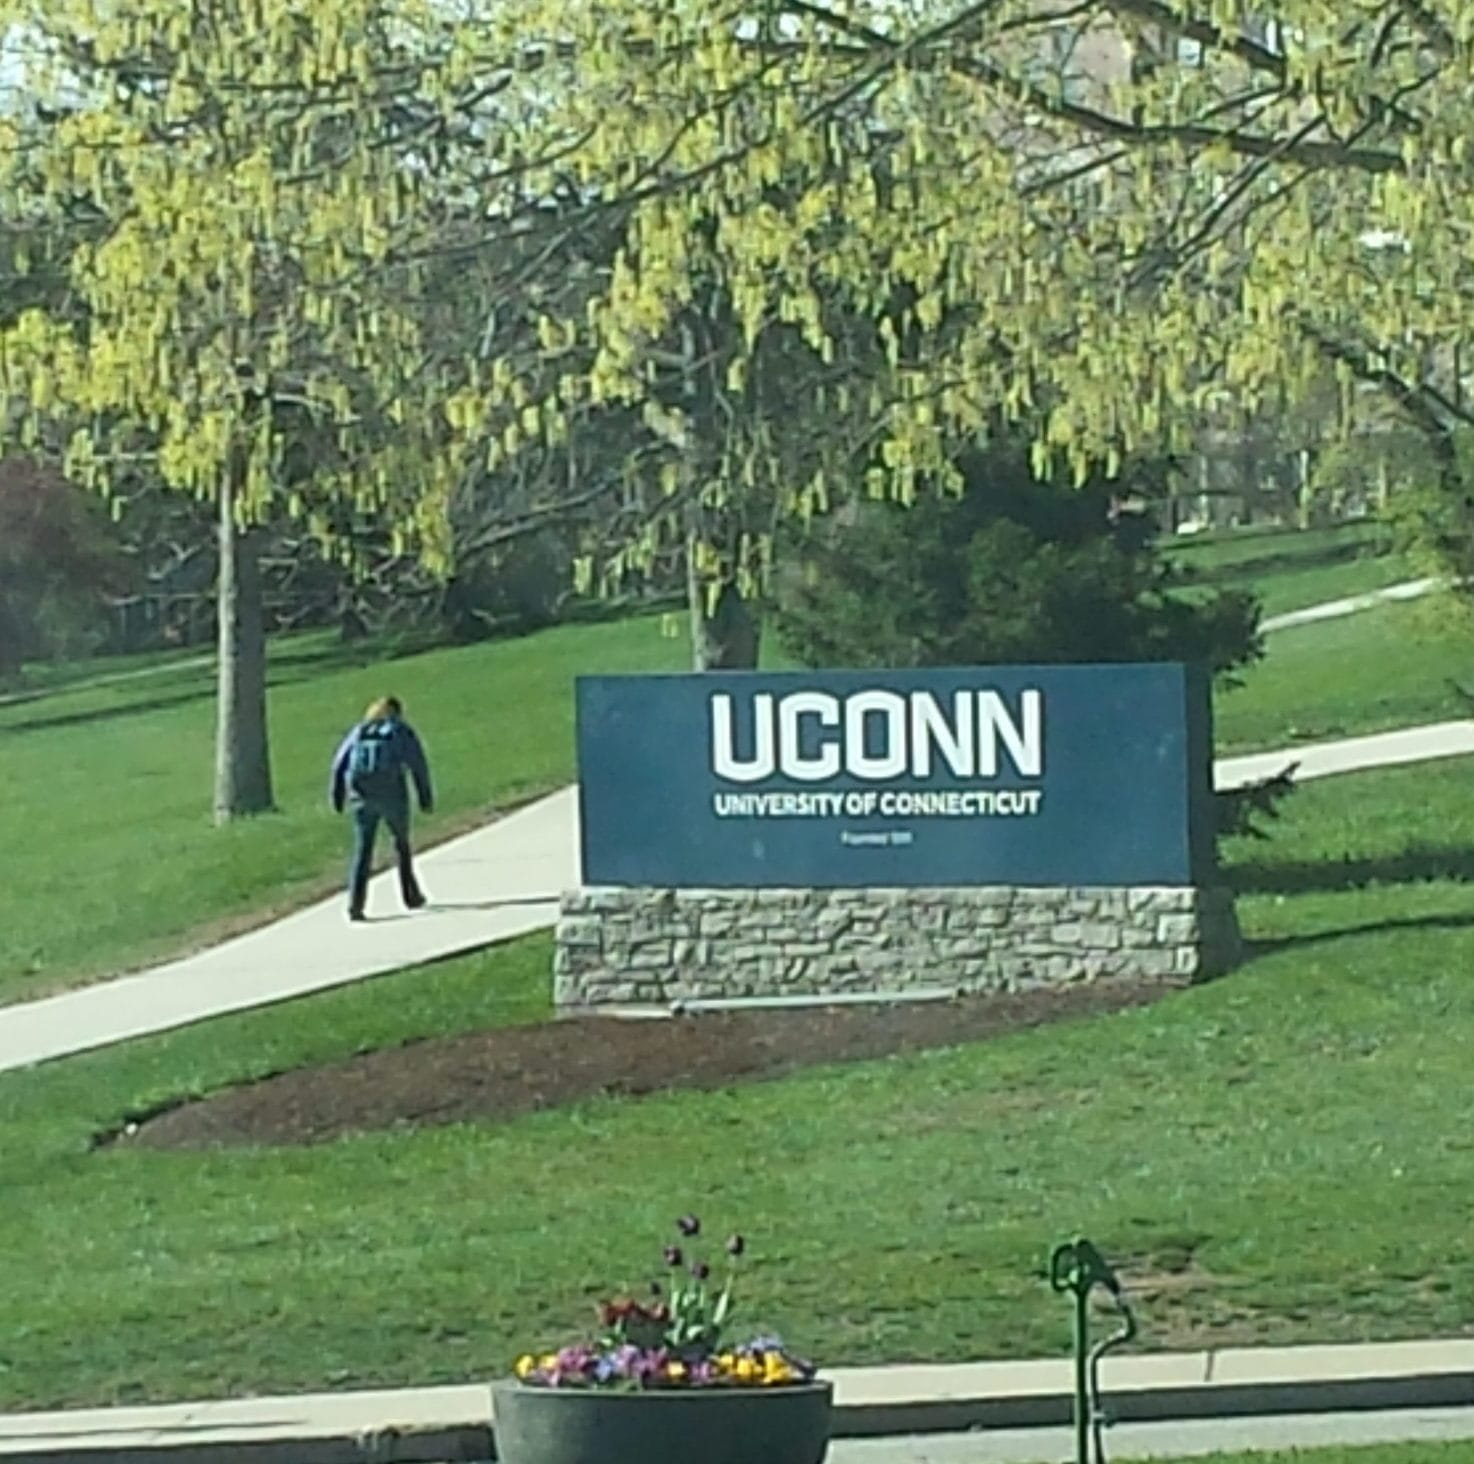 With state funding and labor costs uncertain, UConn considers fragile $1.3 billion budget